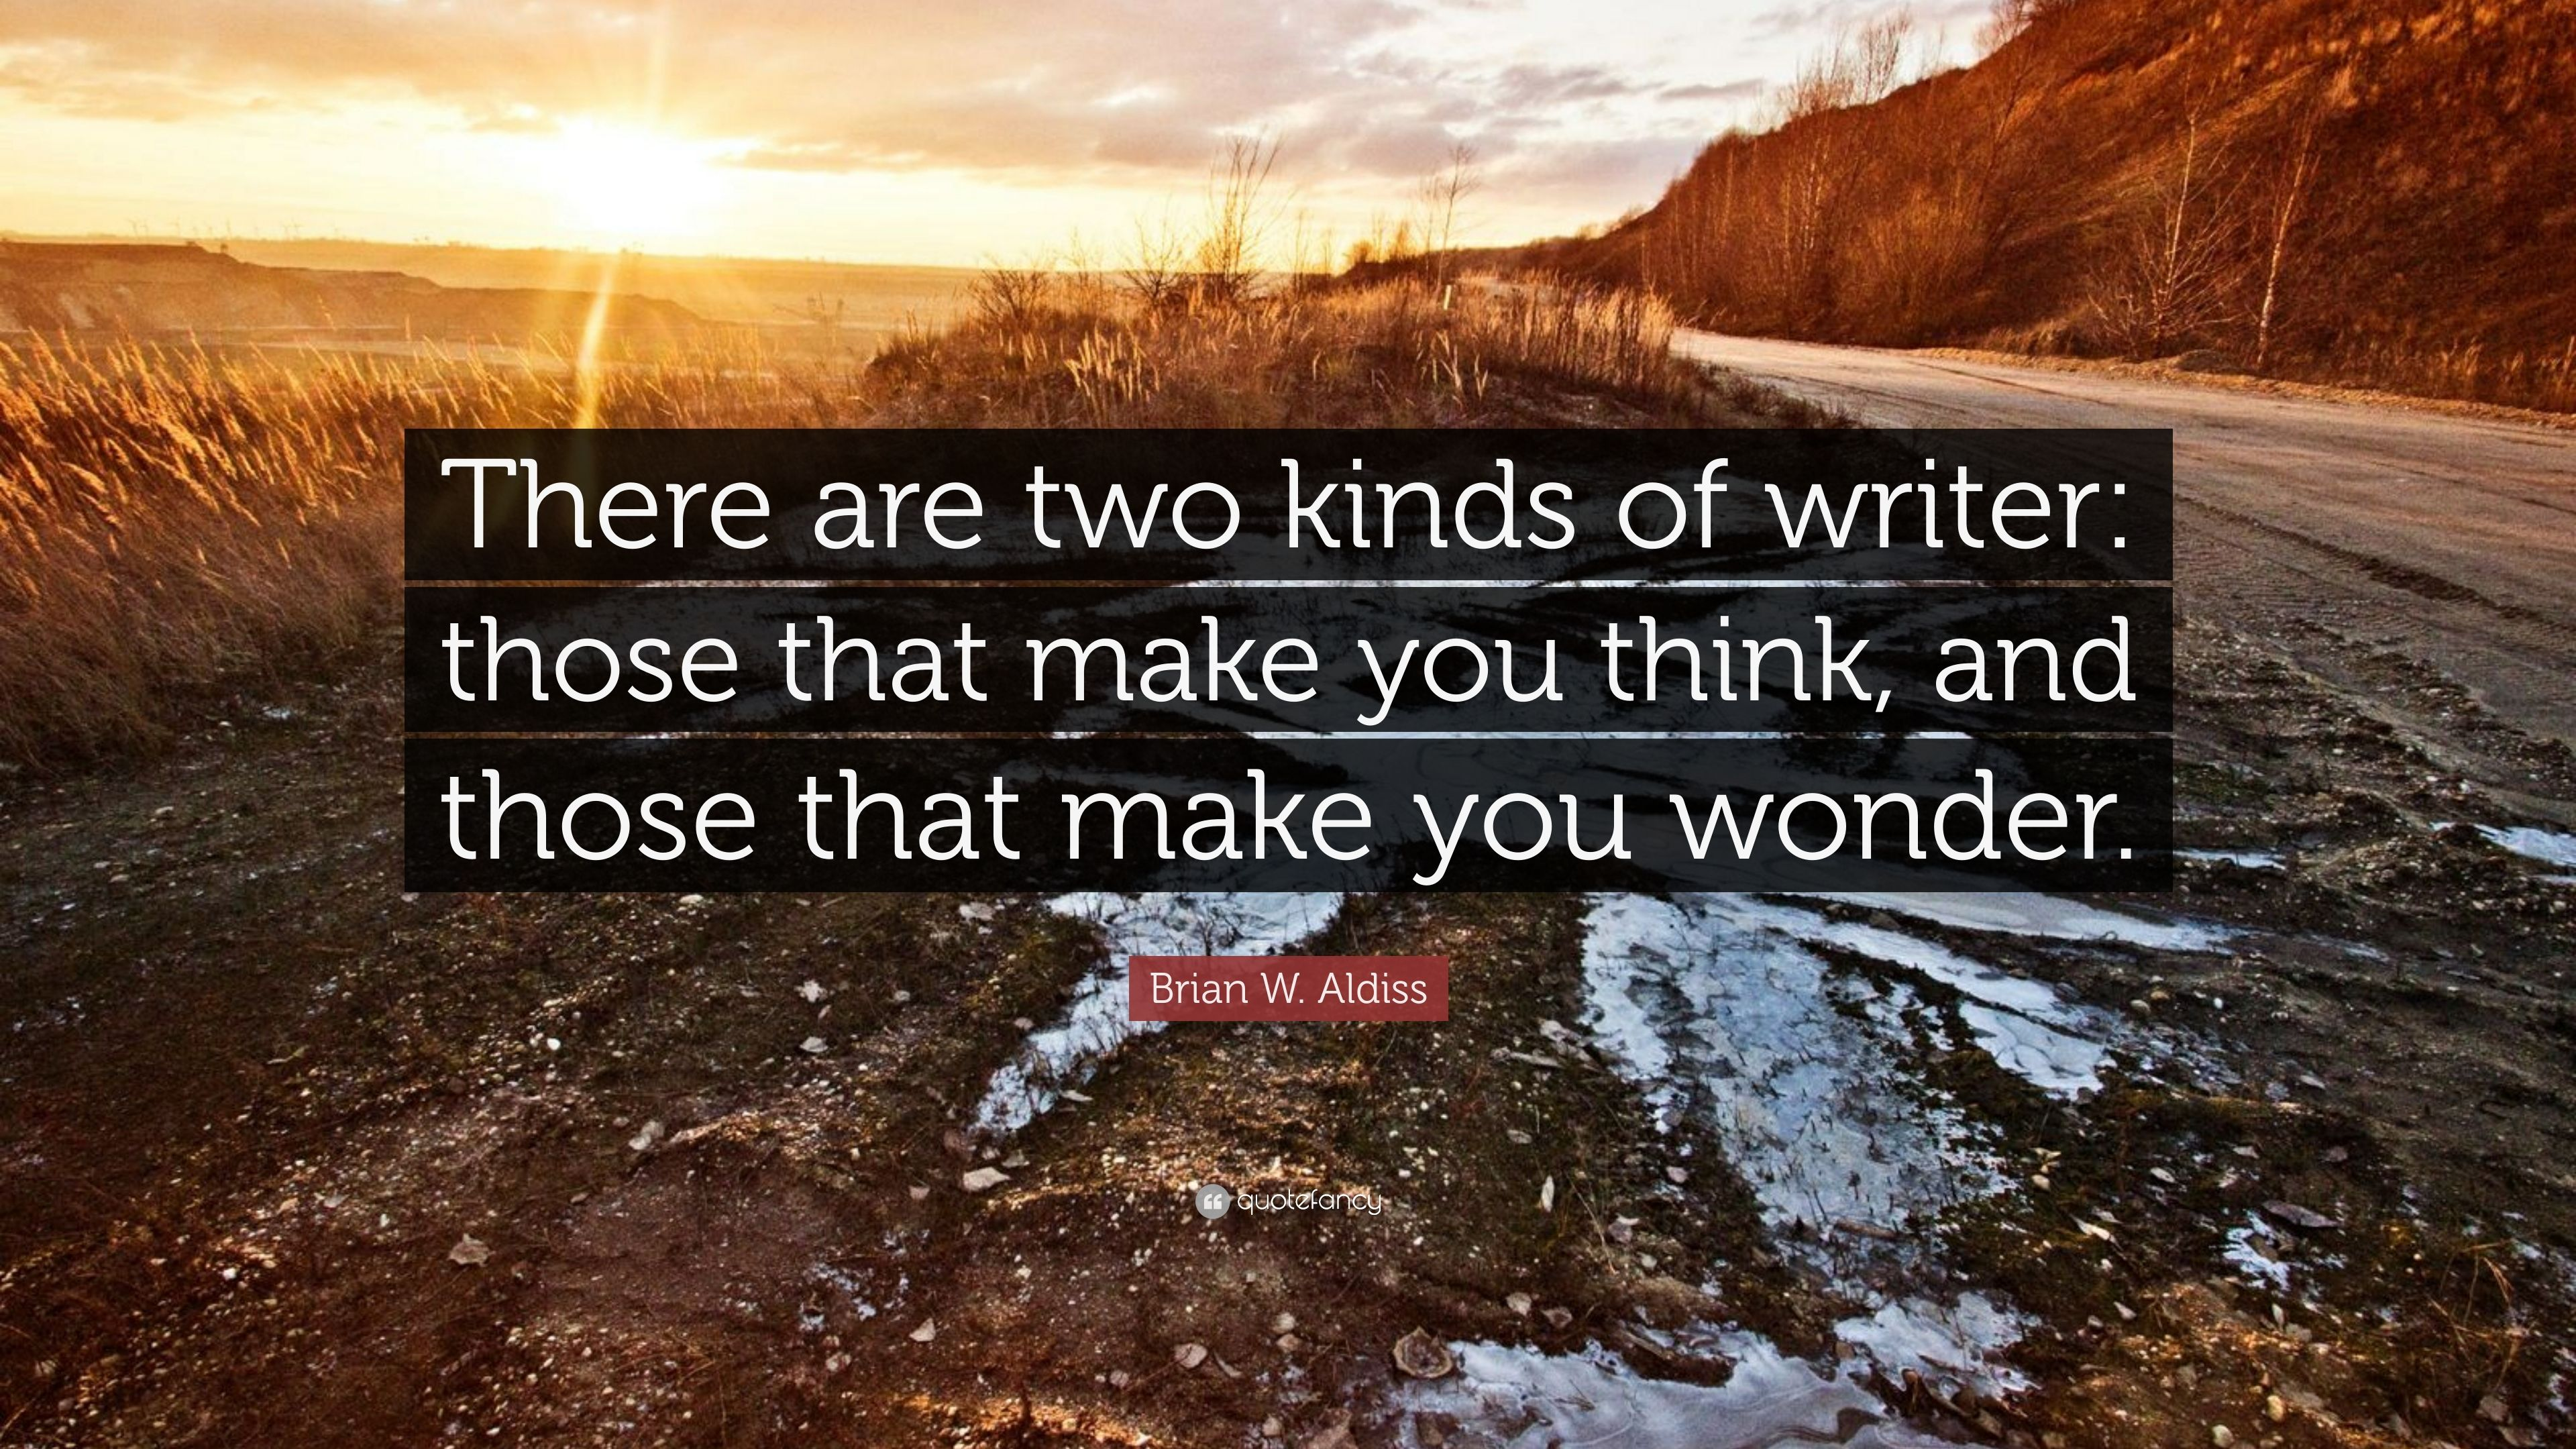 Brian W Aldiss Quote There Are Two Kinds Of Writer Those That